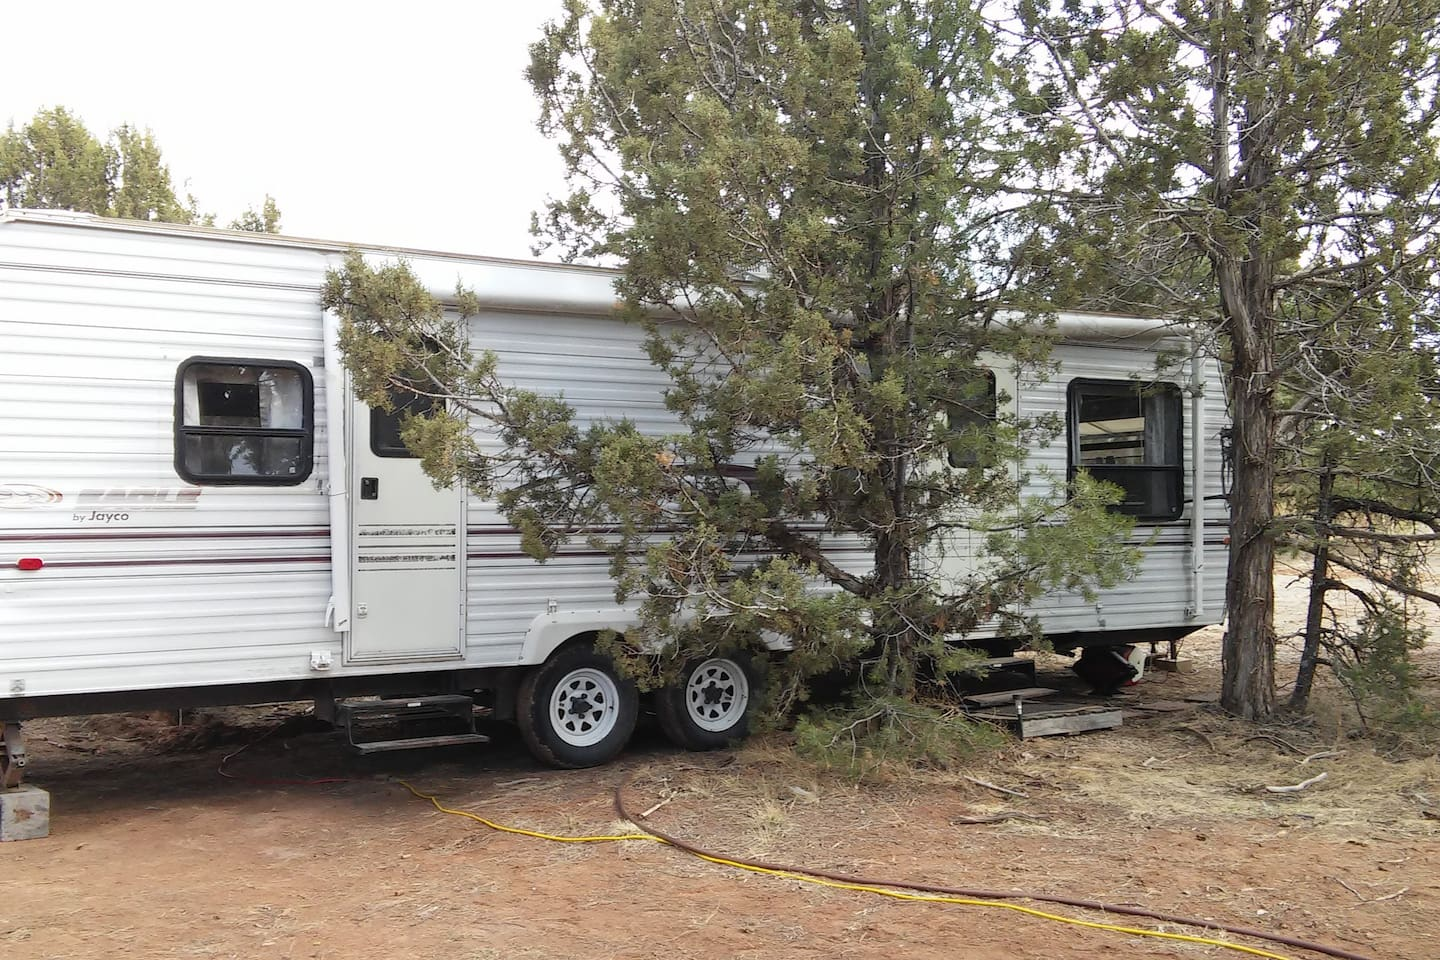 RV in the trees, shaded stone walkway